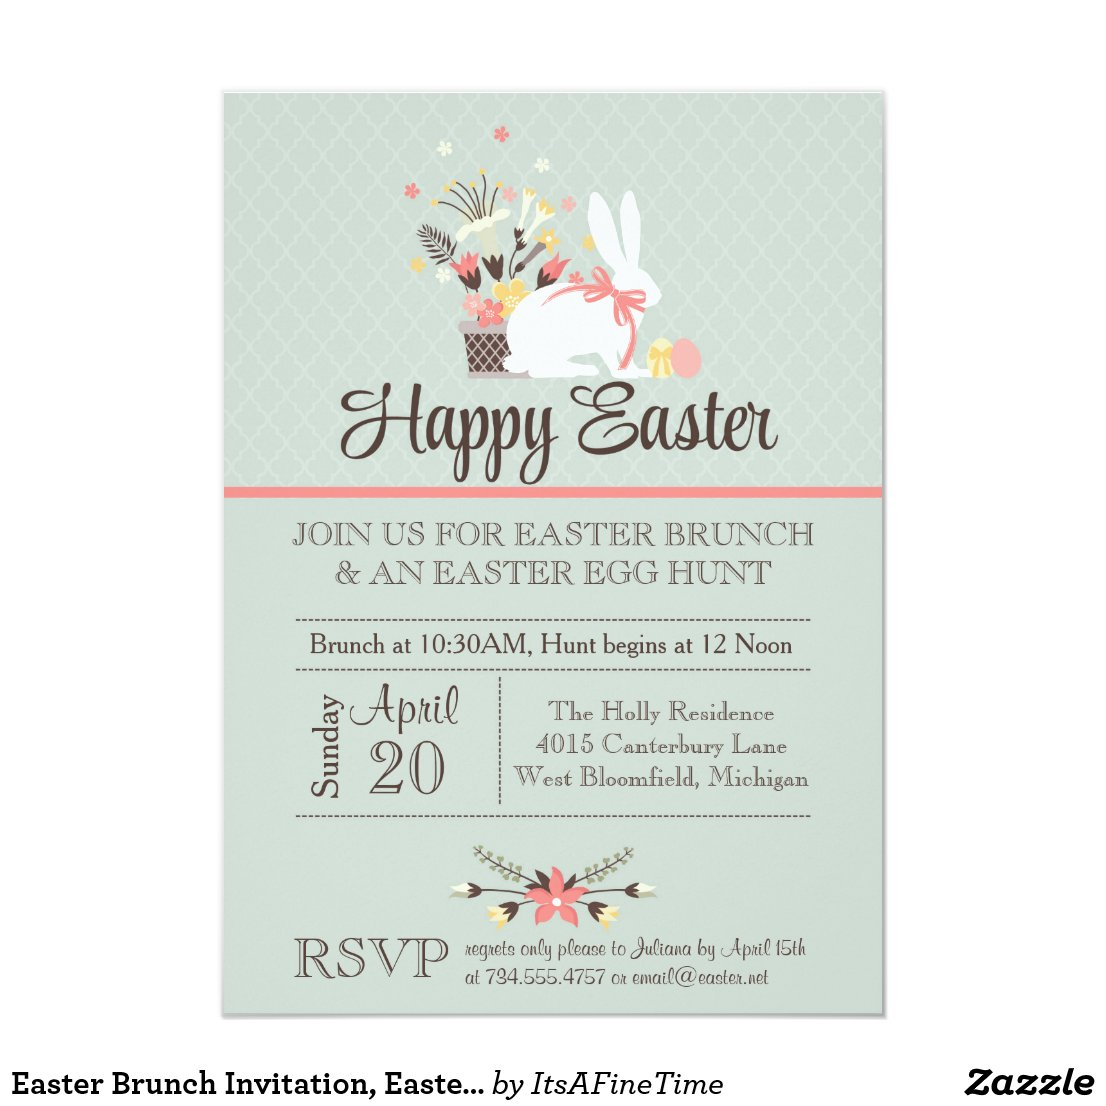 Easter Brunch Invitation, Easter Egg Hunt Invite